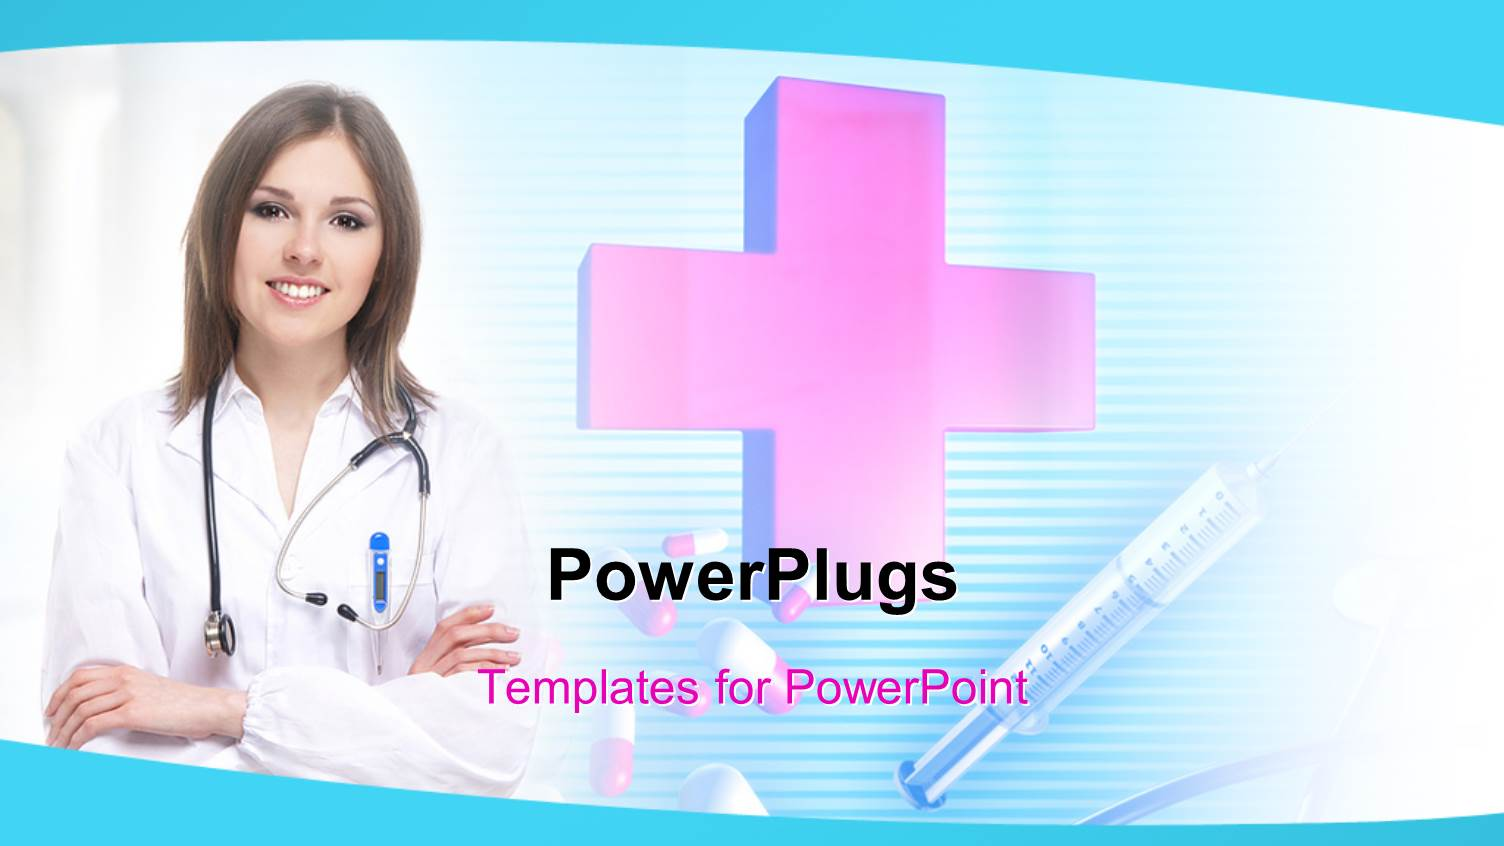 Powerpoint template a pretty female nurse with a big red cross powerpoint template displaying a pretty female nurse with a big red cross toneelgroepblik Images